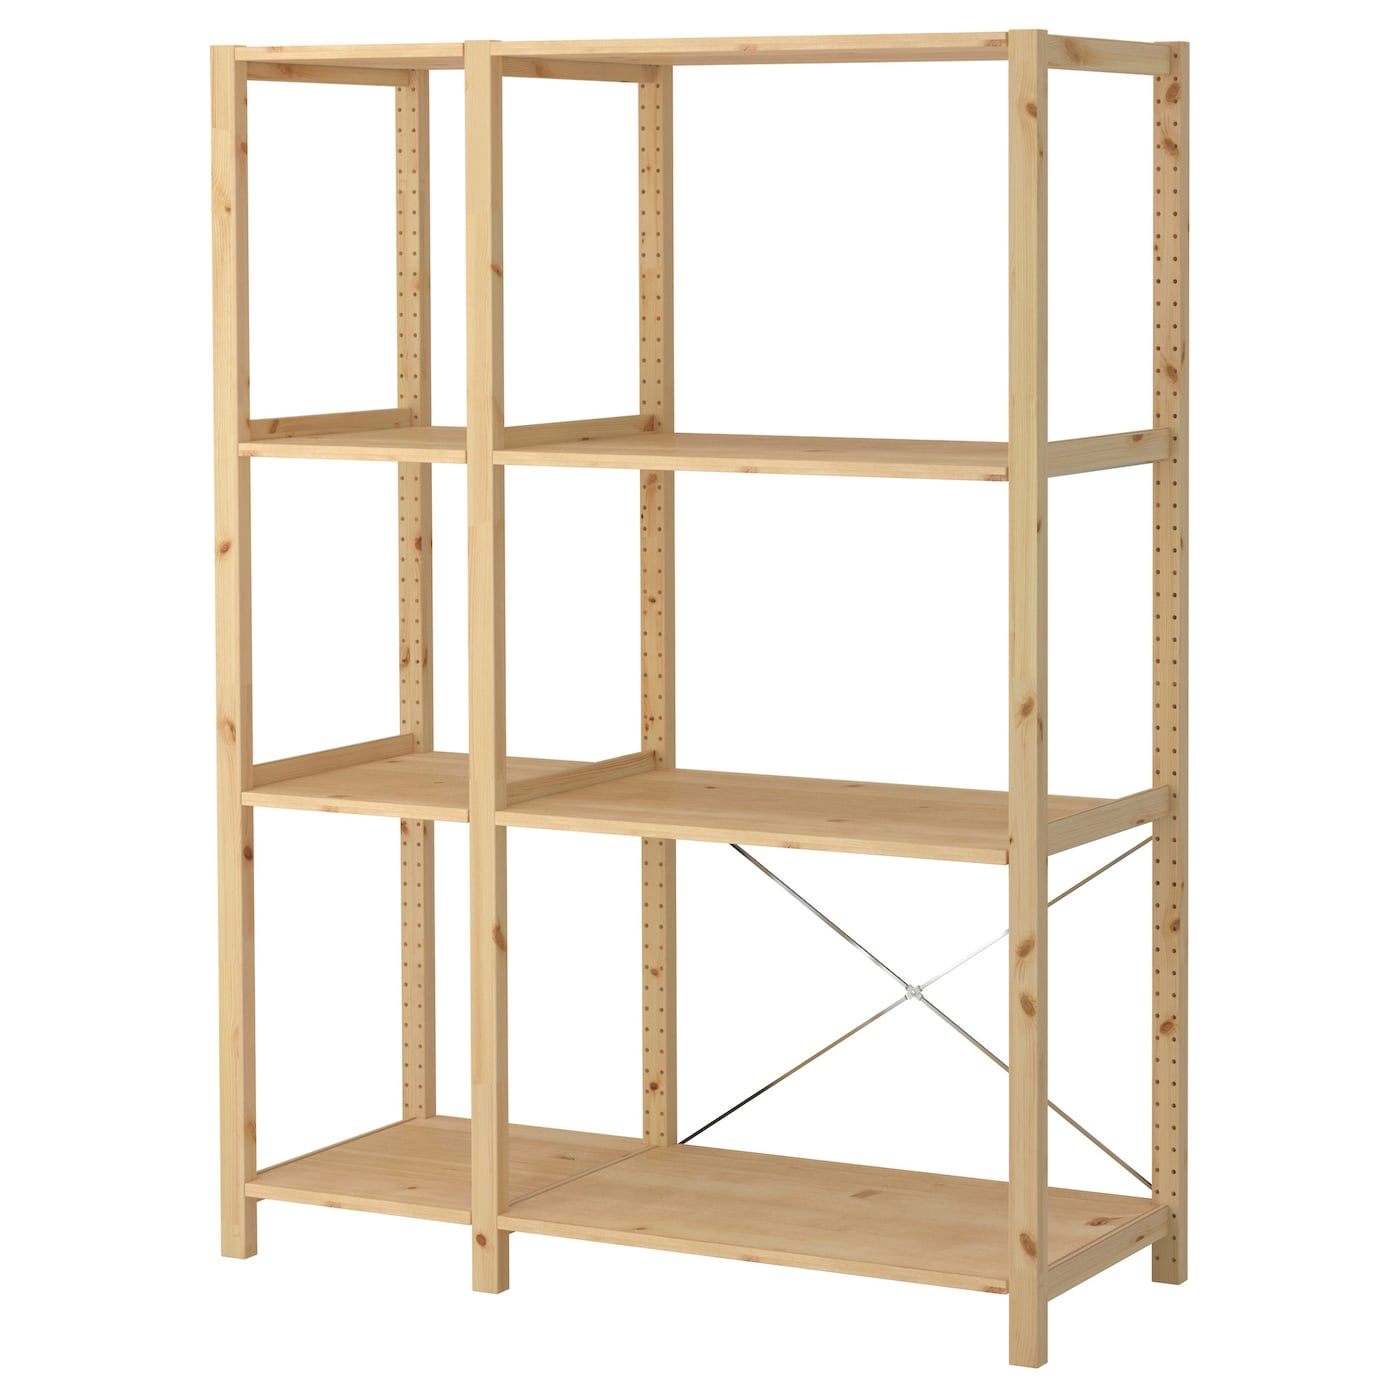 Ikea Ivar 2 Sections Shelves You Can Move And Adapt Ing To Suit Your